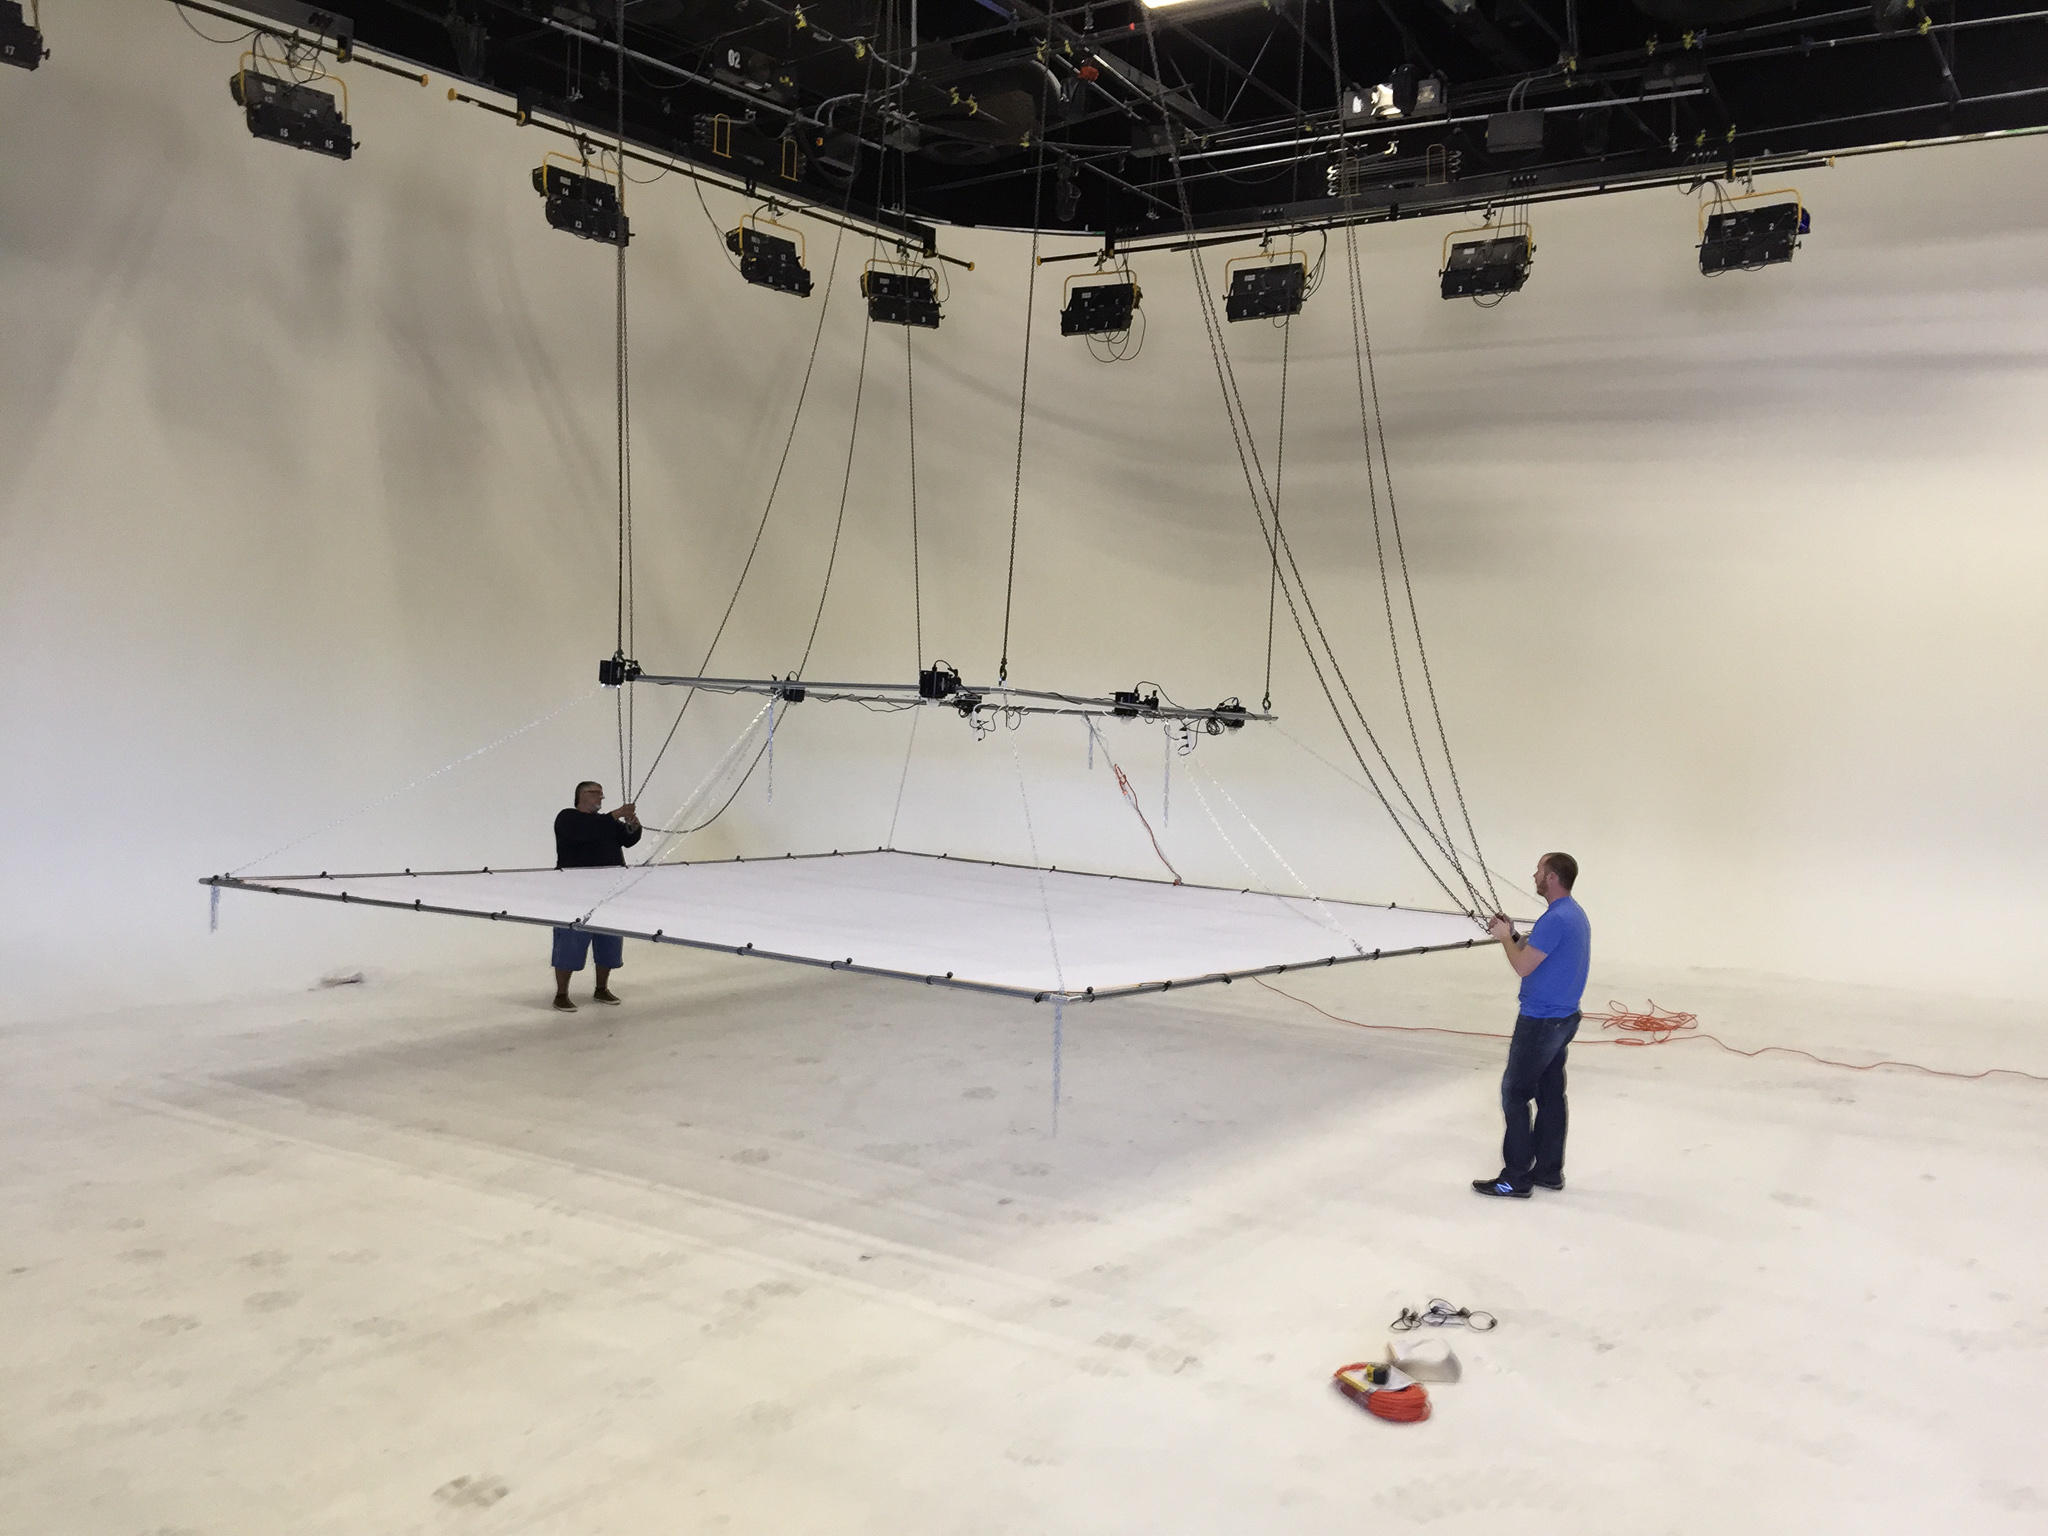 We have liftoff! 20' x 20' silk panel installed using 48 ball-bungees. Raising the rig requires four separate chains to be pulled simultaneously.